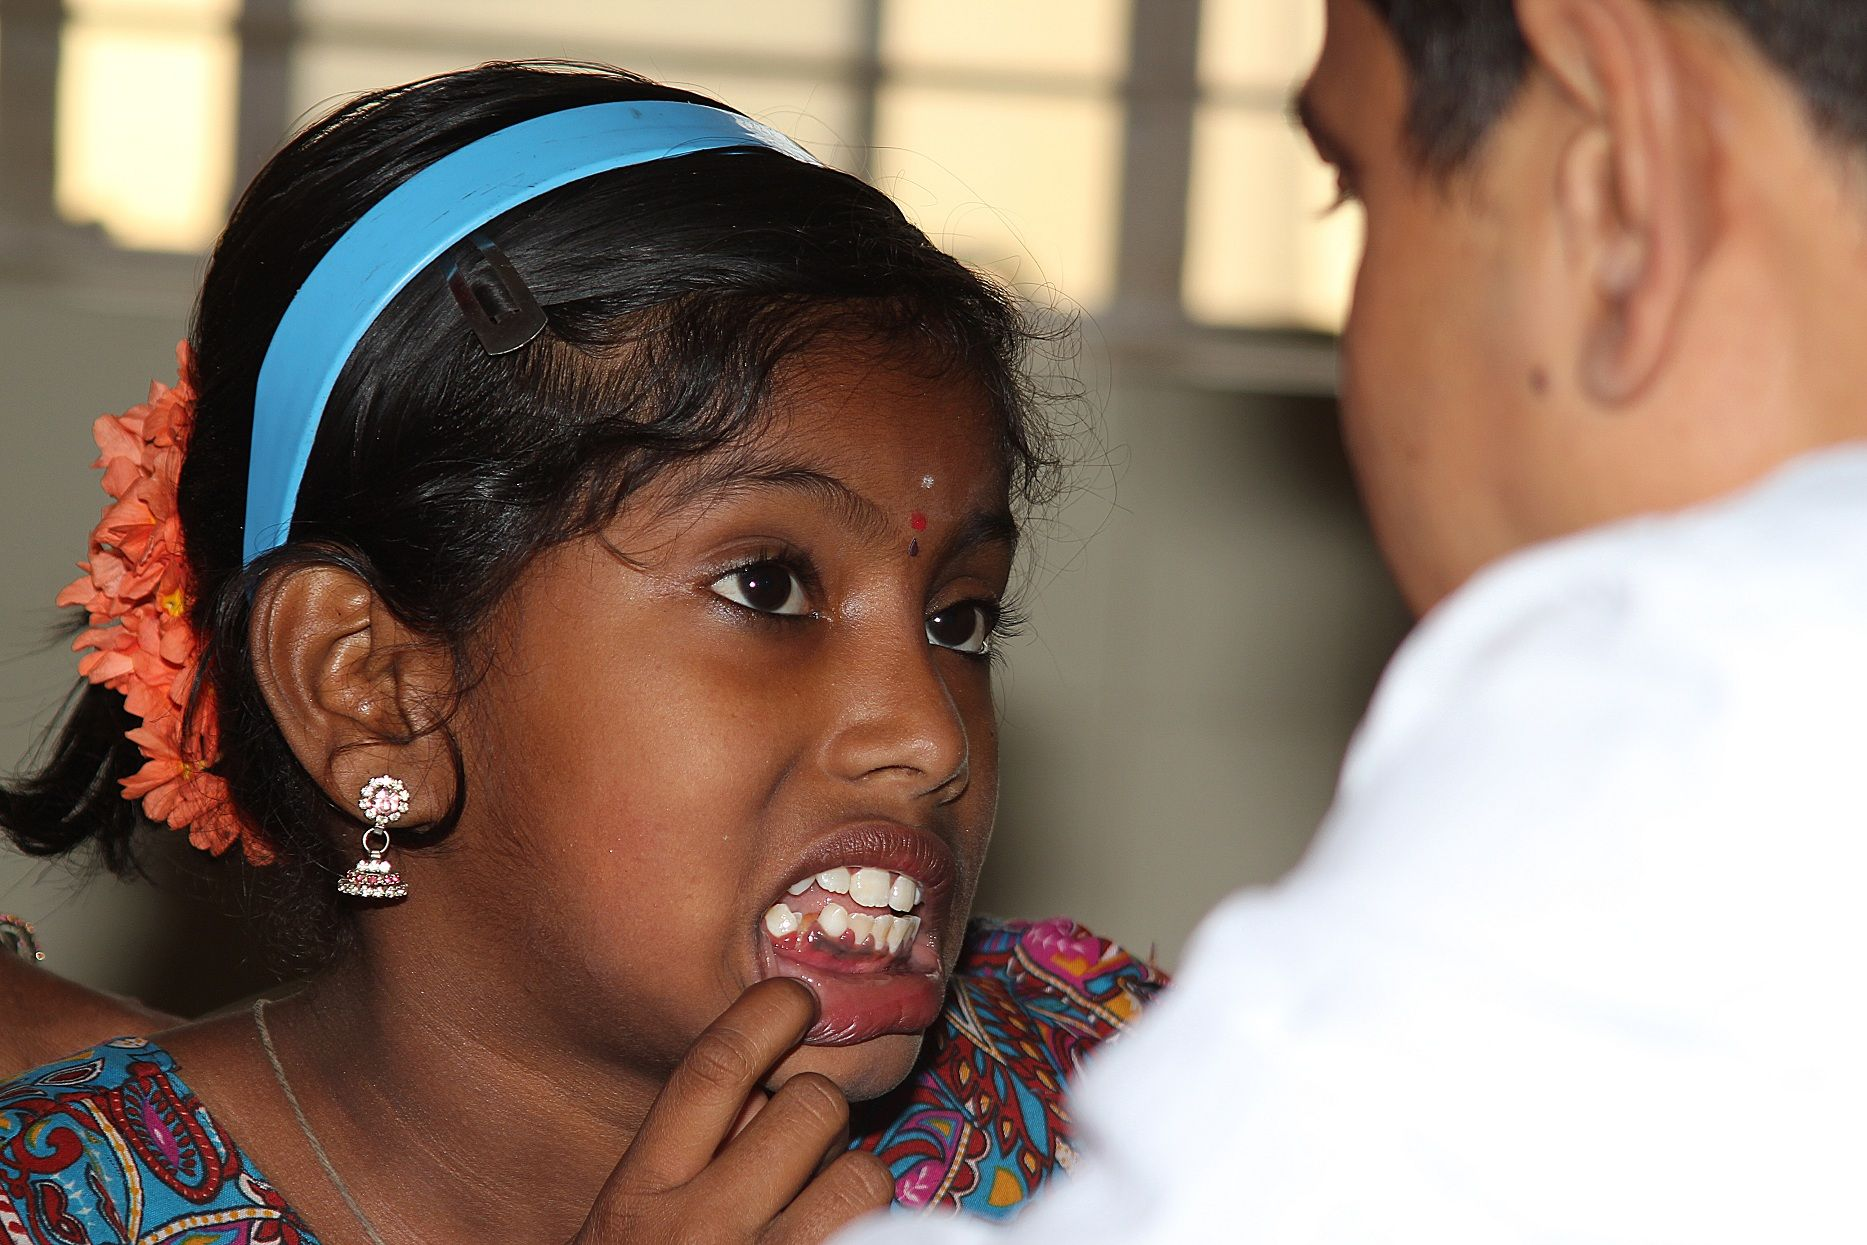 Dental screening during public health programs in india by